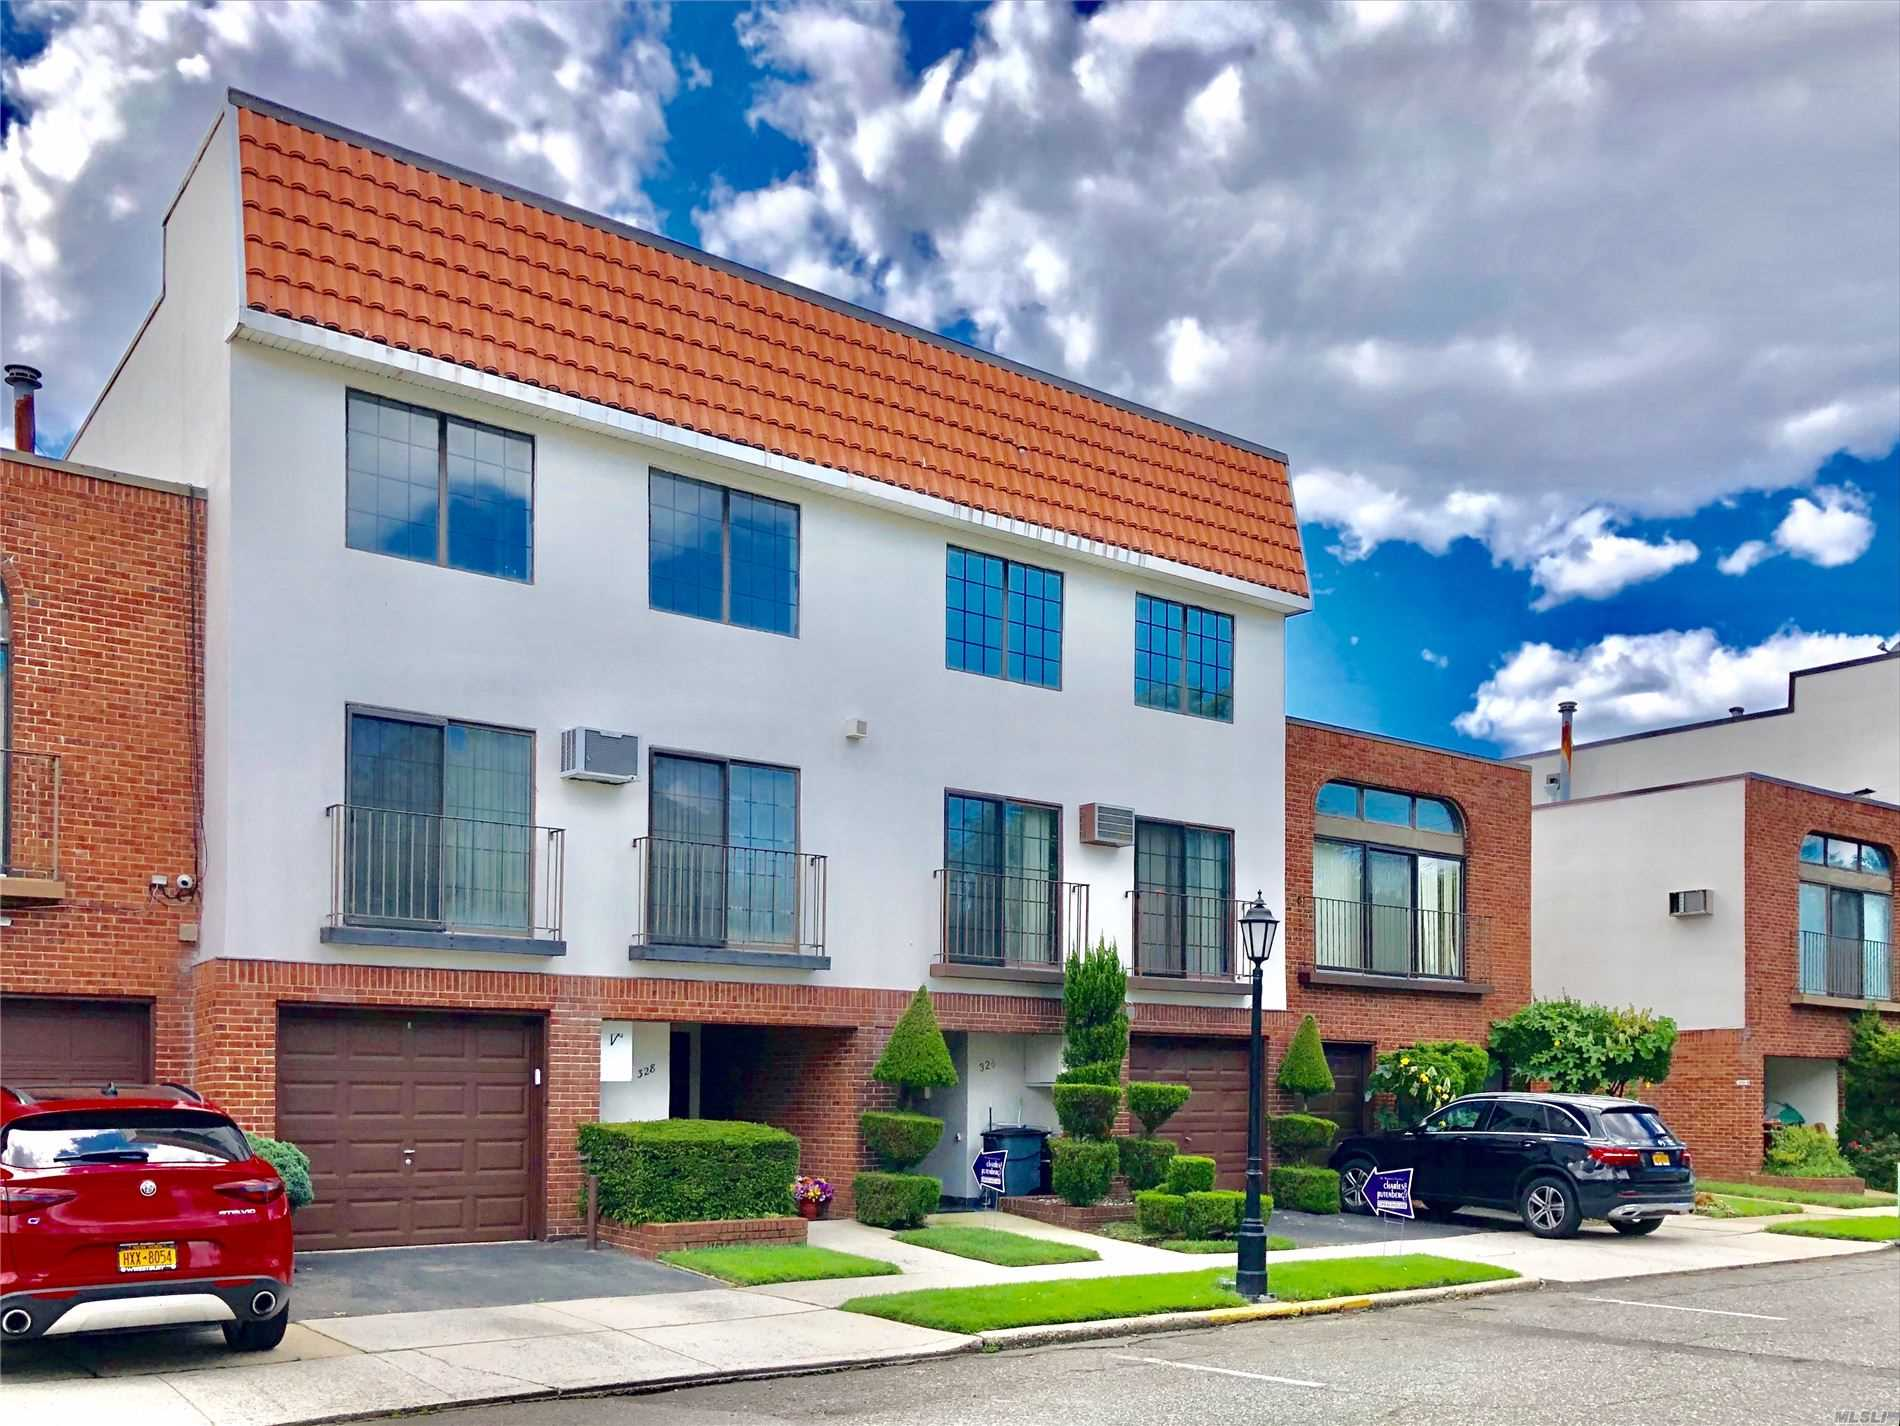 2 Br 2.5 Bath Duplex Silverpointe Condo, Mint Condition, Marble Floor, Upgraded Open Concept Modern Kitchen With Top Of The Line Appliances. Master Suite With Jacuzzi Bath. Many Closets. Large Living Room And Dining Room. Private Backyard For Family Entertainment. You Must See.